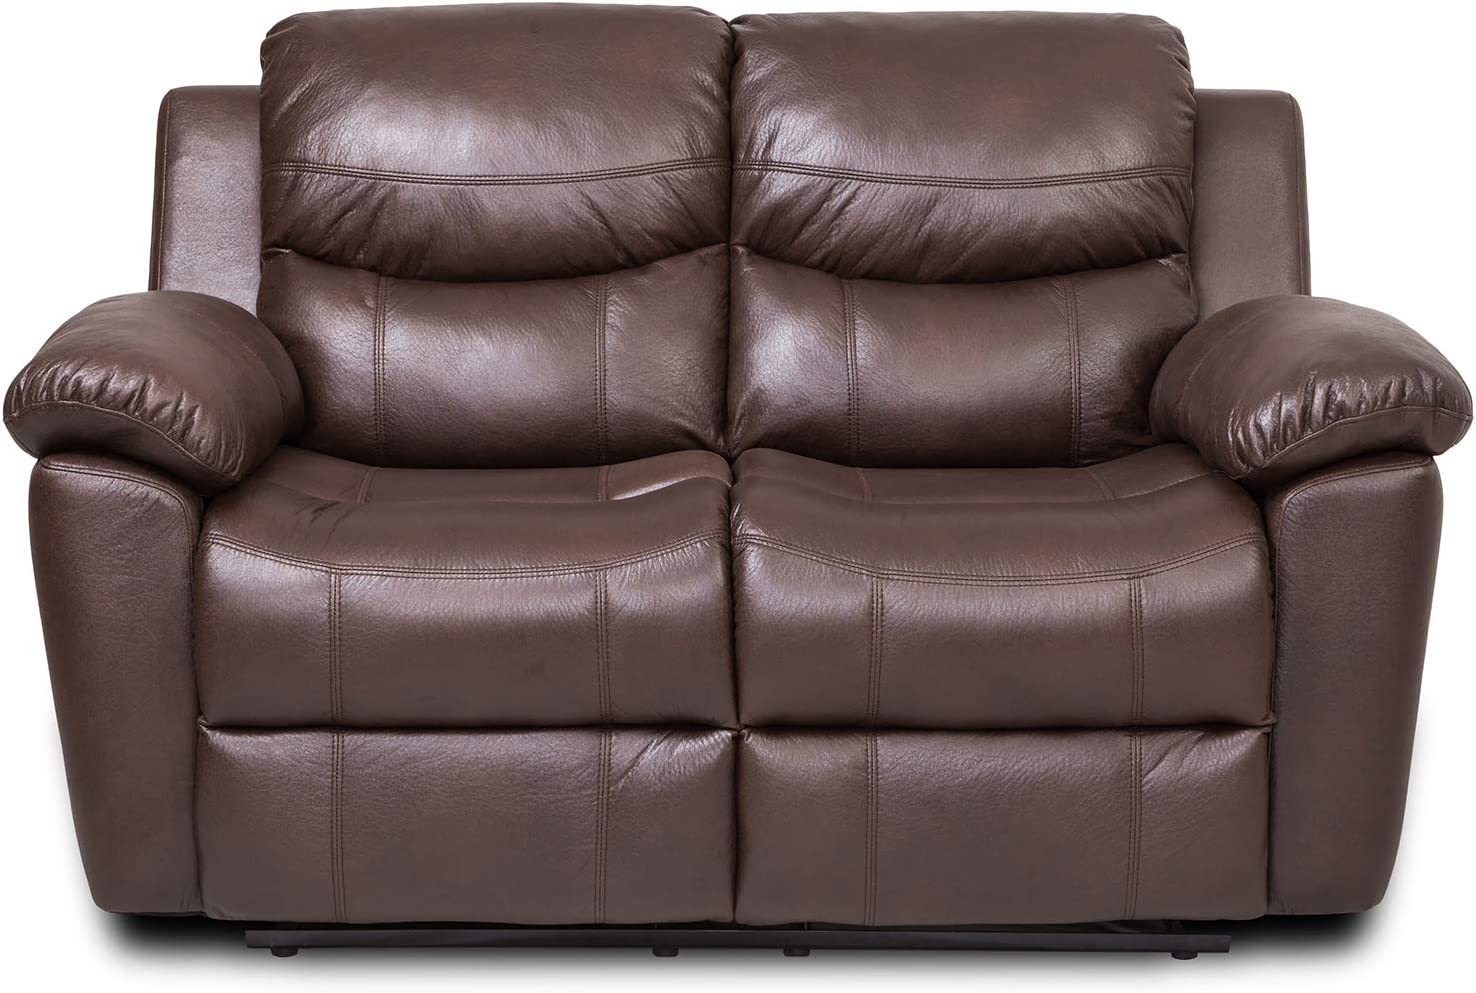 JUNTOSO 3PCS Bonded Leather Recliner Sectional Sofa Set for Living Room Chocolate, Living Room Set 3+2+1 3 Seater Couch Sofa Loveseat Chair